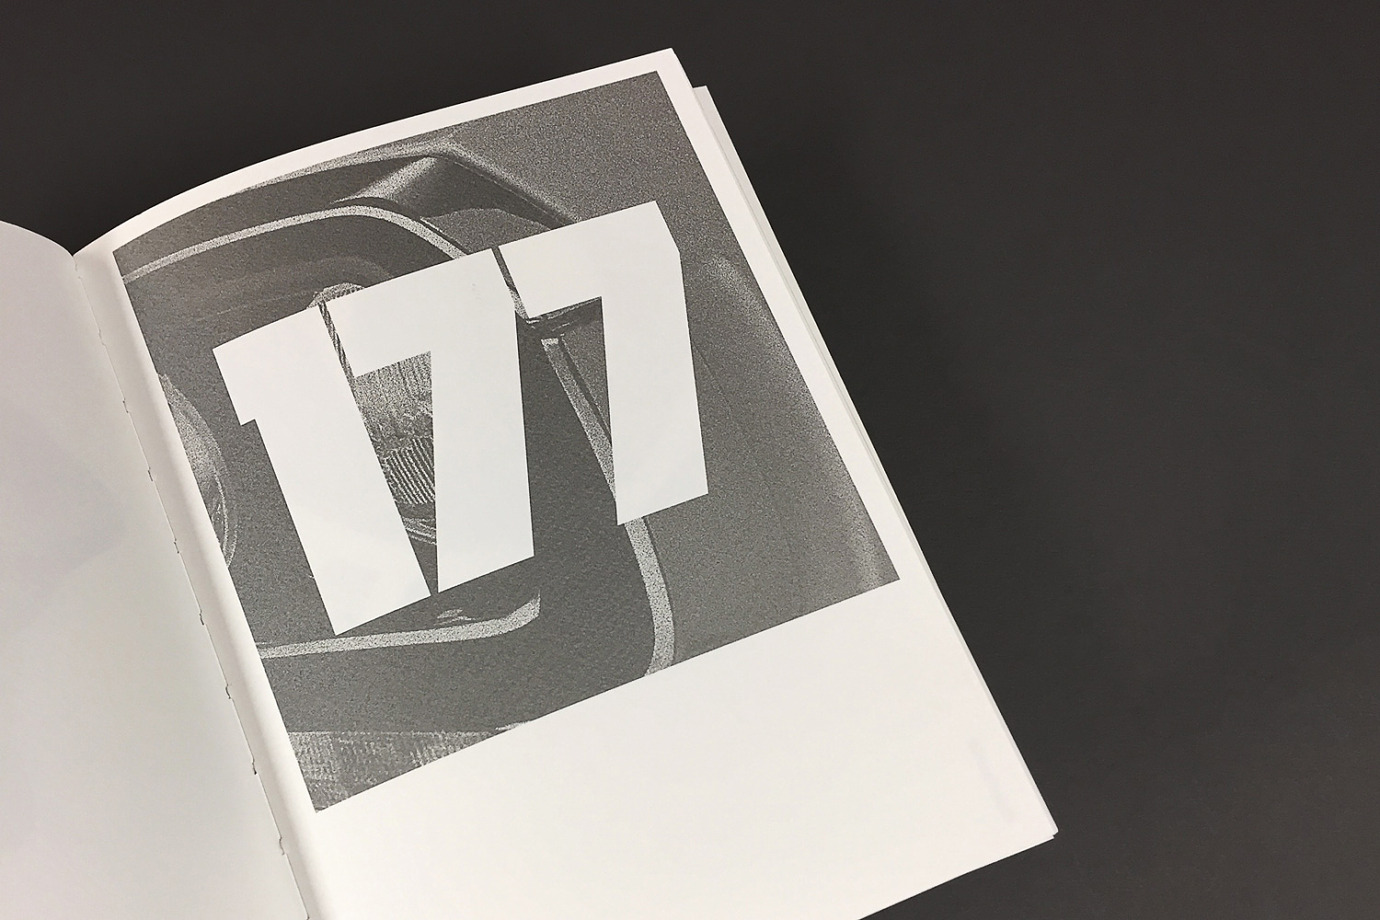 https://spystudio.co.uk/wp-content/uploads/2018/12/fedrigoni365_journal_1-1380x920.jpg